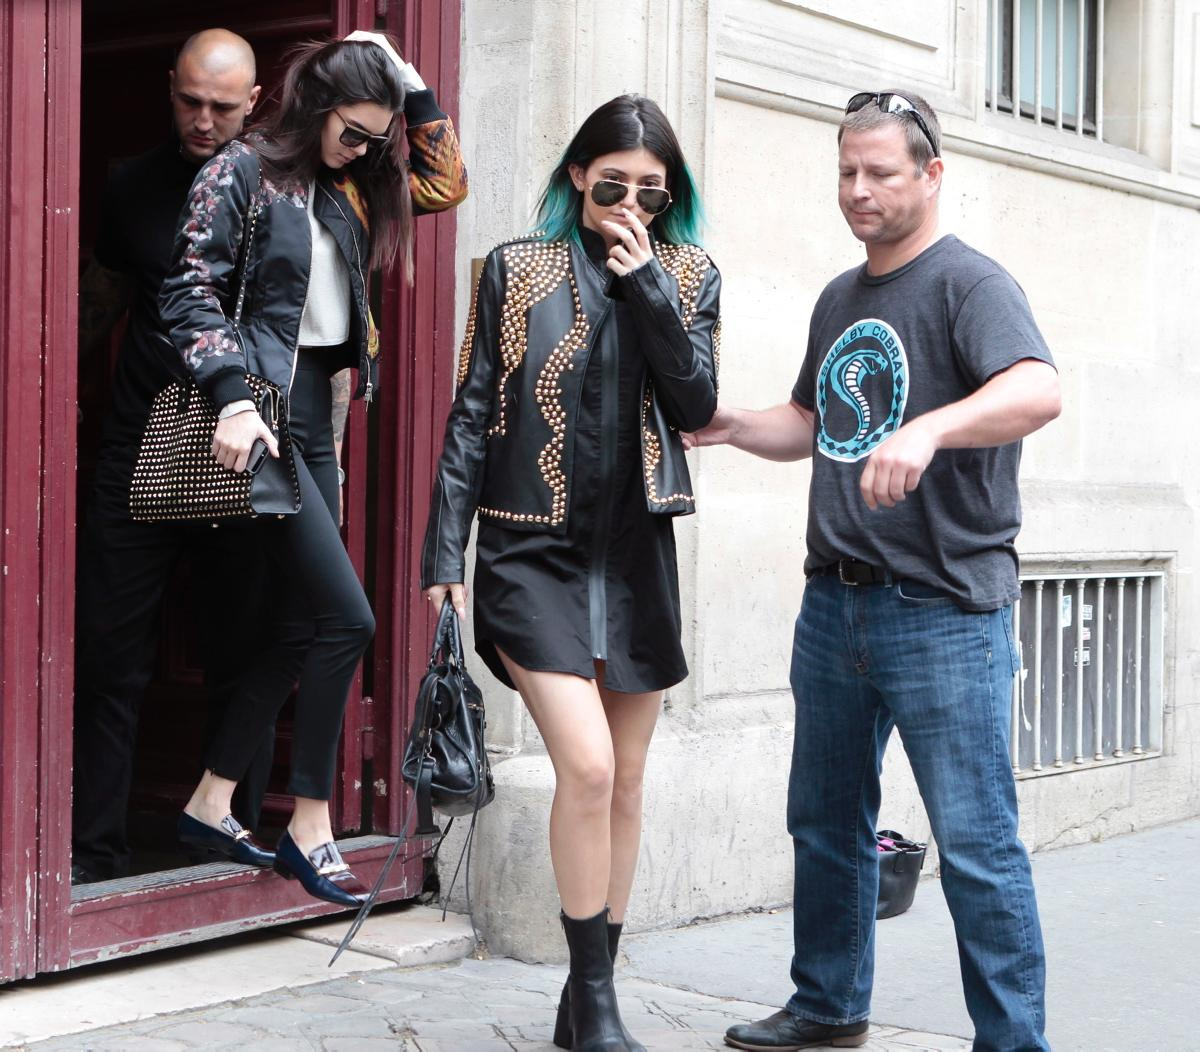 Kendall and kylie Jenner leaving Kanye West Paris apartment